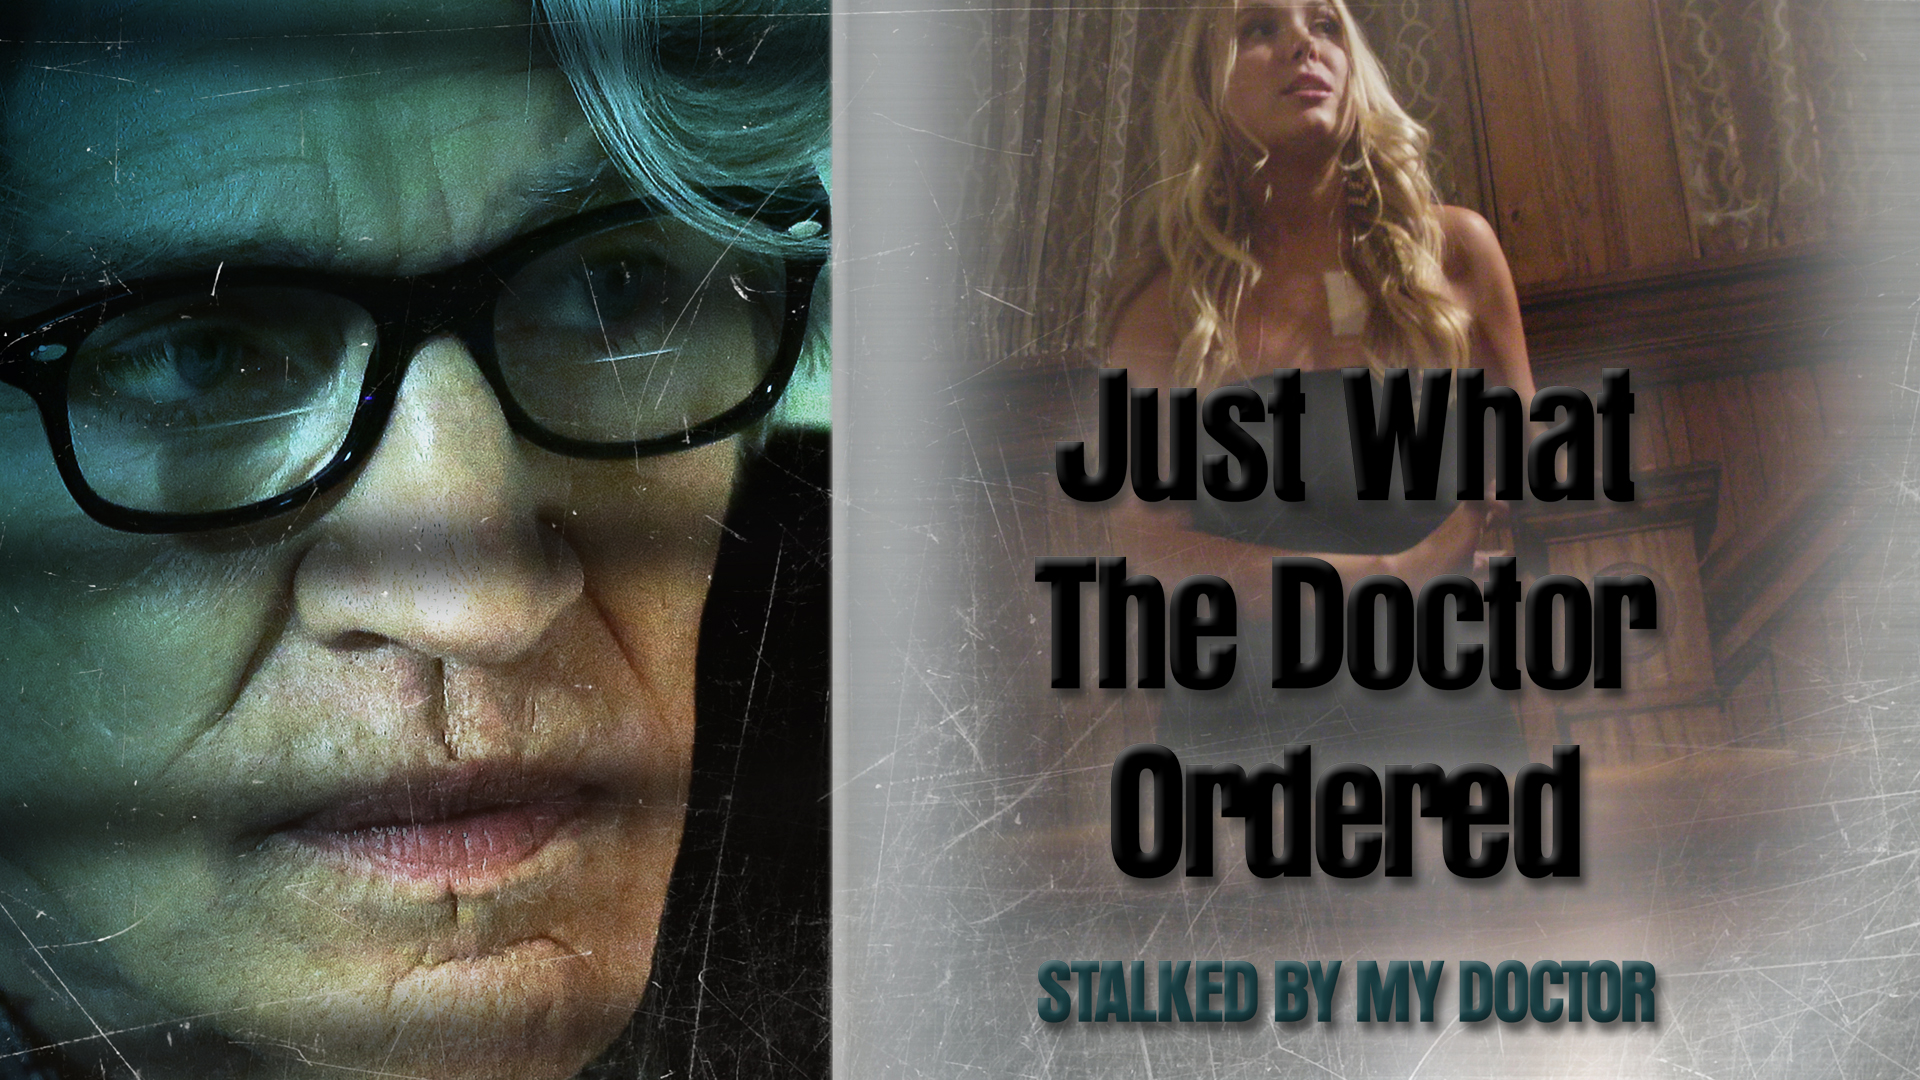 Stalked By My Doctor: Just What the Doctor Ordered